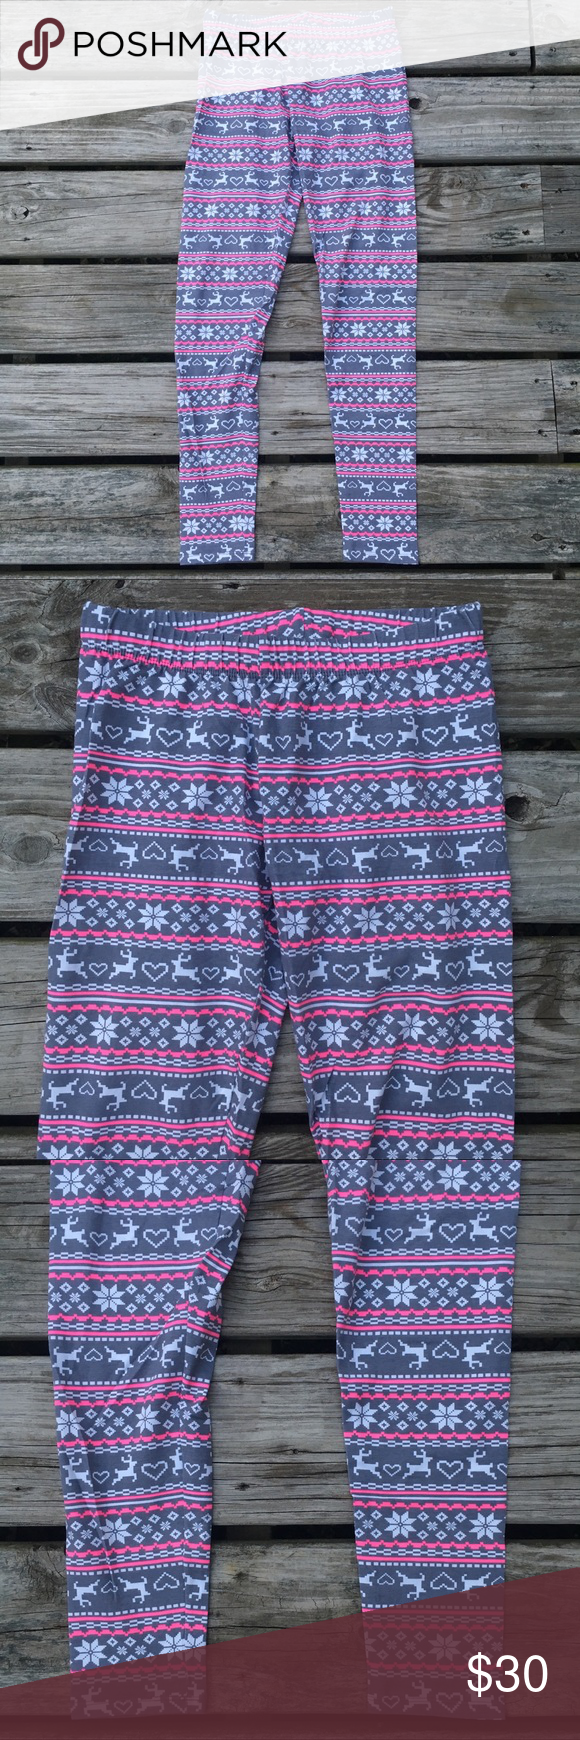 0937beda5601b4 CUTE UGLY SWEATER CHRISTMAS HOLIDAY LEGGINGS PANTS Tags- Gorgeous Gray /  Pink / White